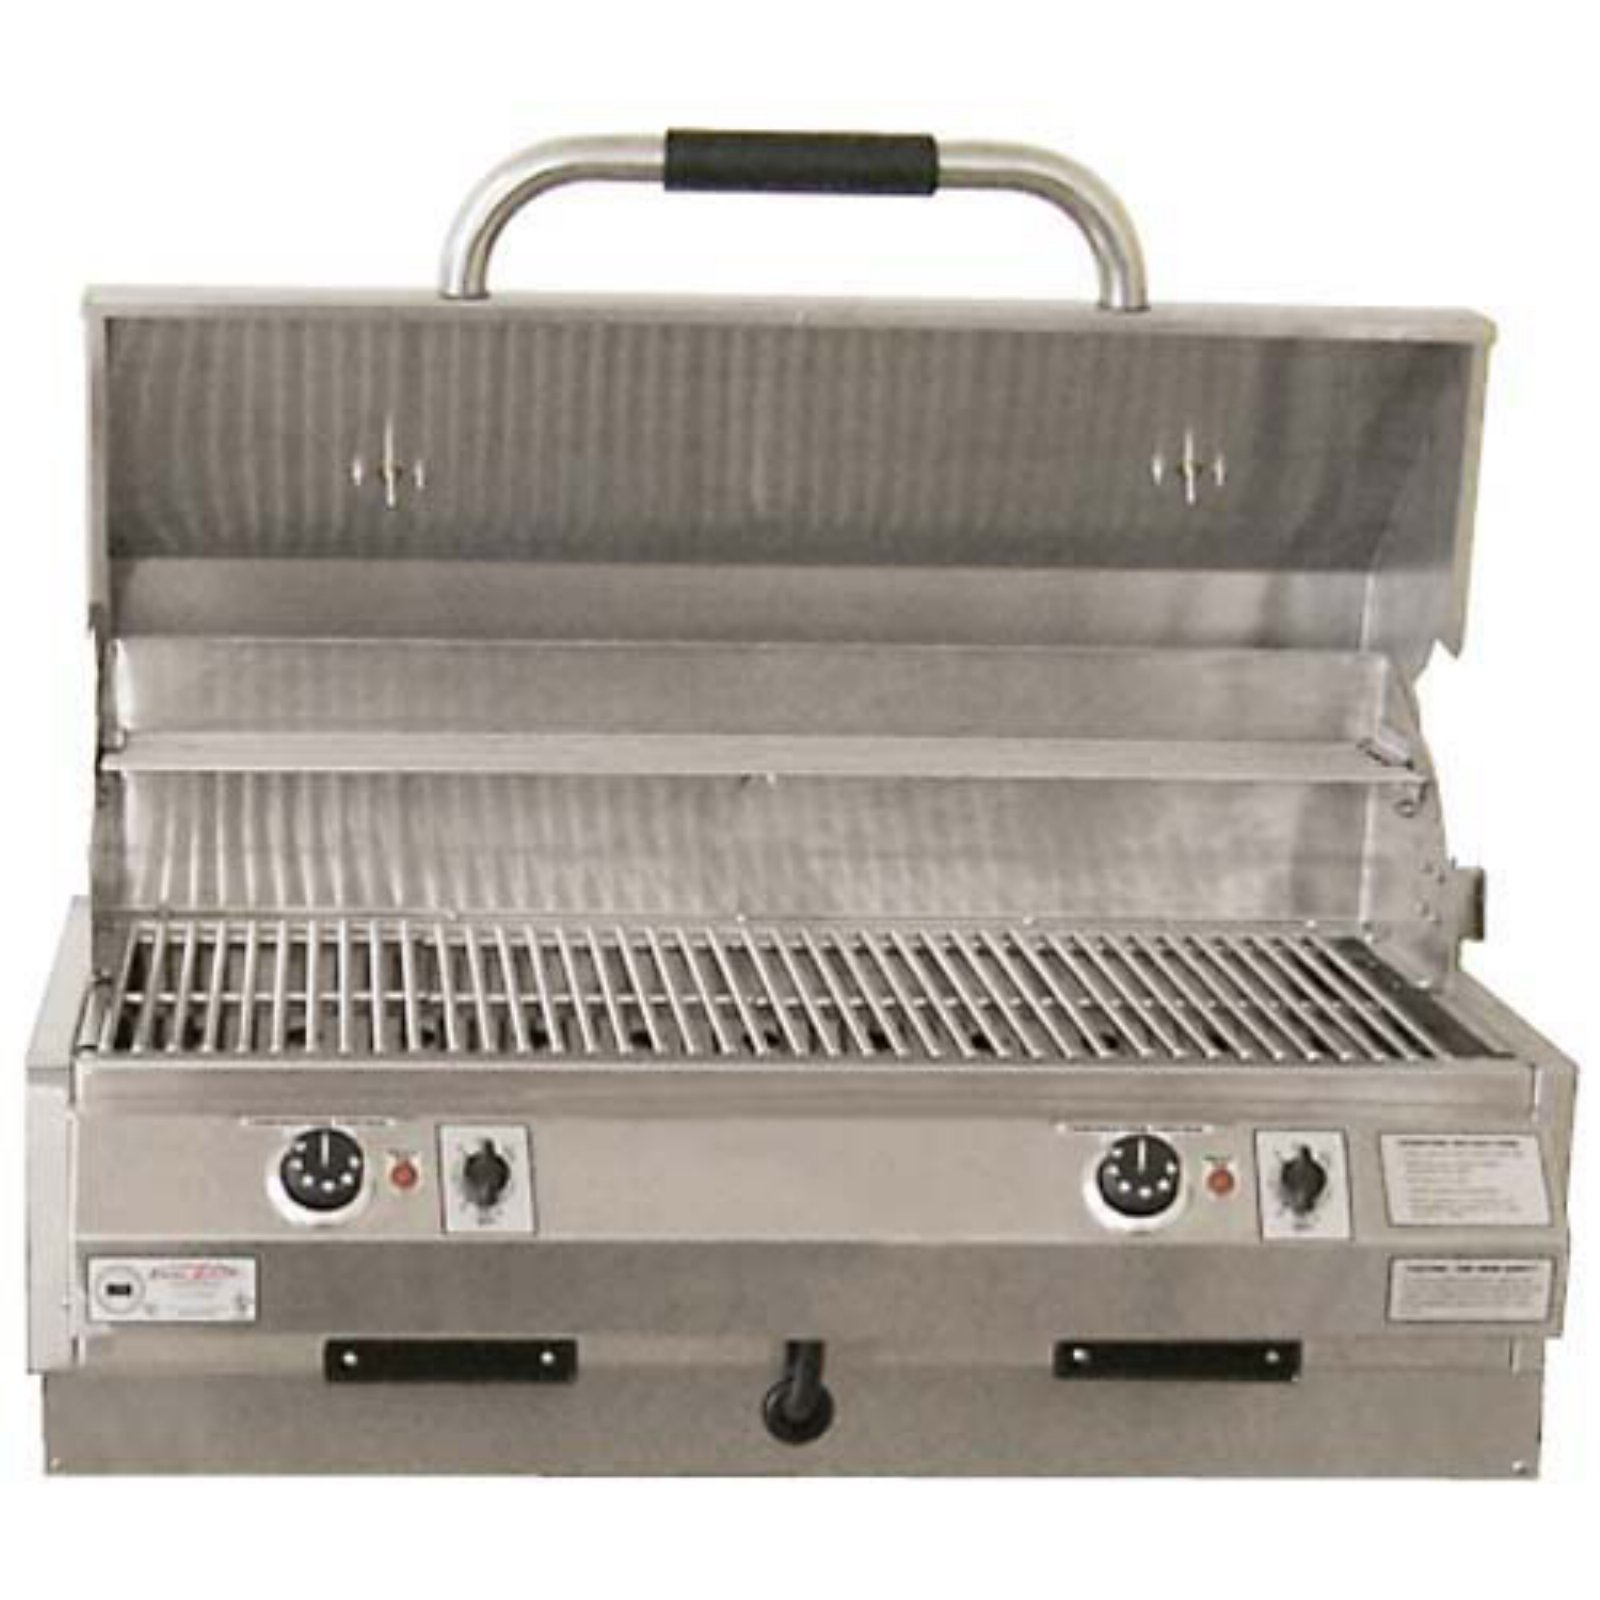 Electri-Chef Ruby Marine 32 in. Built-In Electric Grill Dual Burner by Electri - Chef Grill